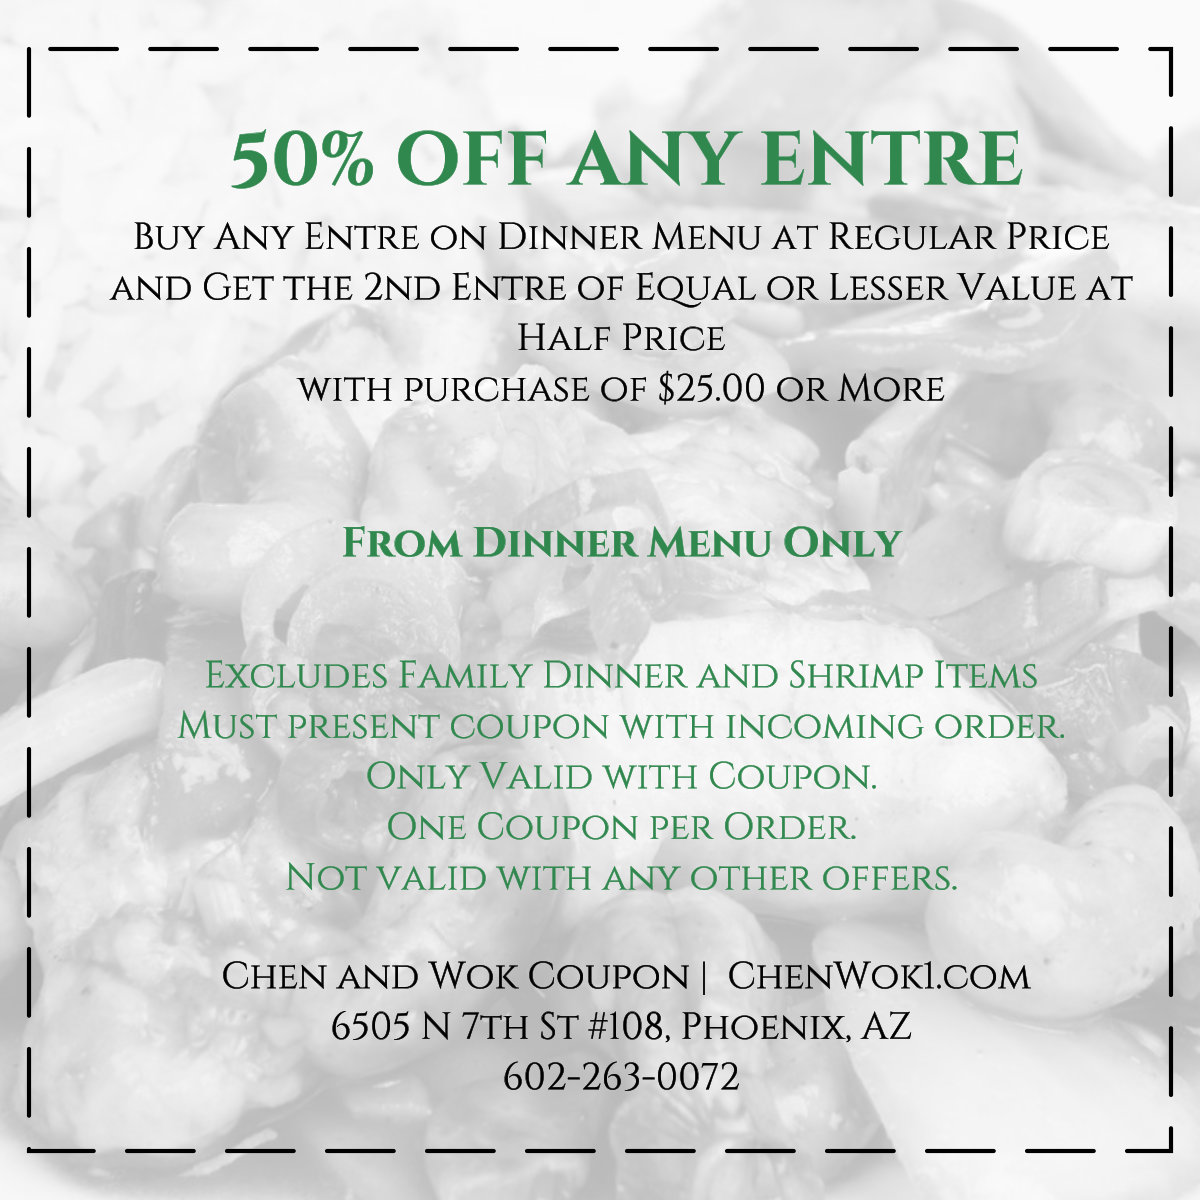 50% off Entre Chen and Wok Coupon